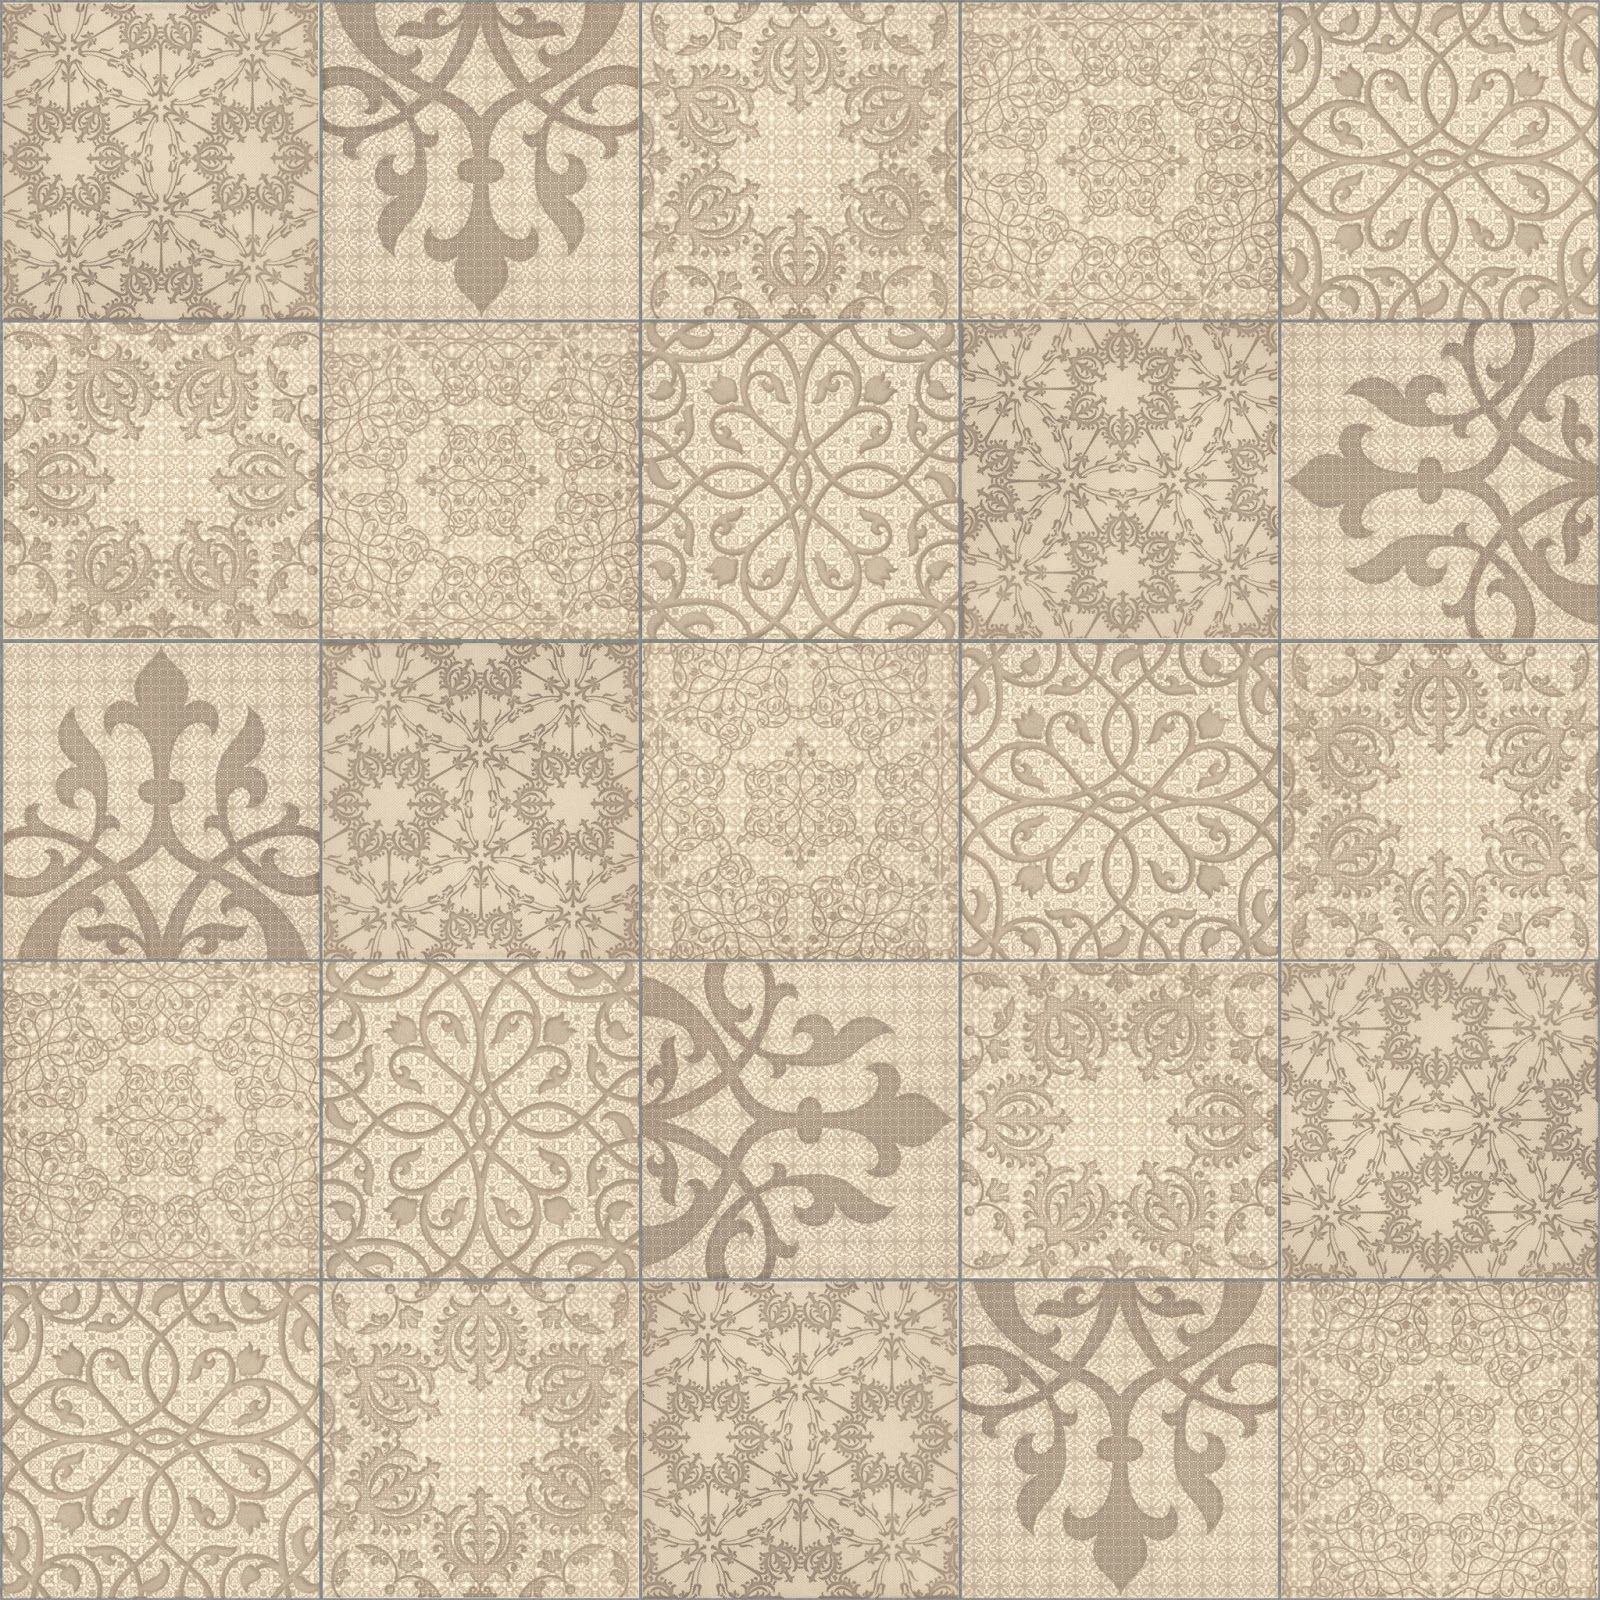 tile floor texture design. Ceramic Tiles Texture Design Ideas 14444 Floor Tile Floor Texture Design T